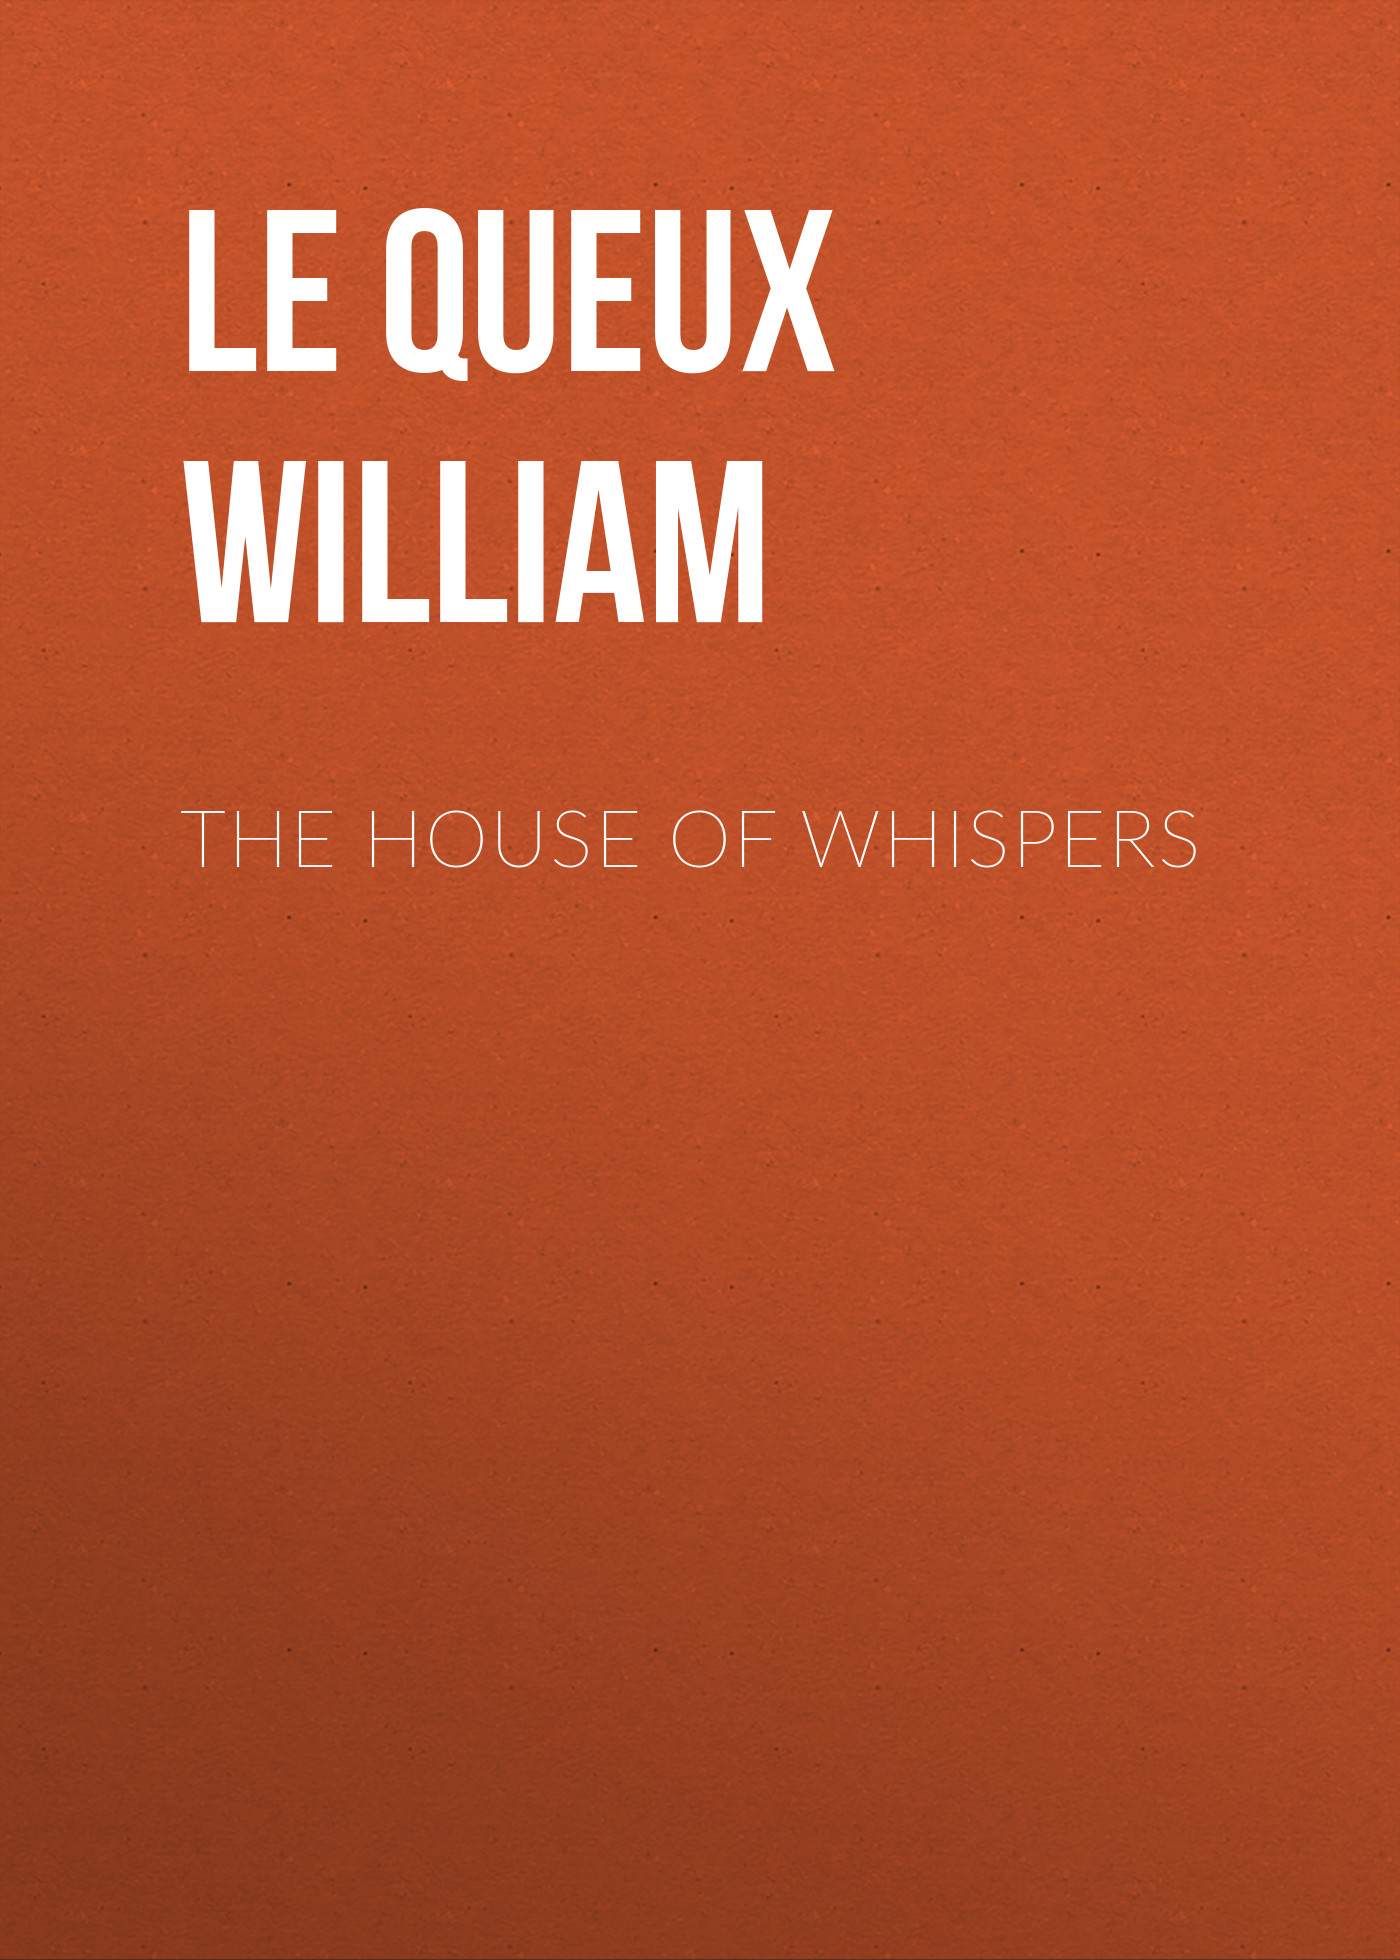 лучшая цена Le Queux William The House of Whispers